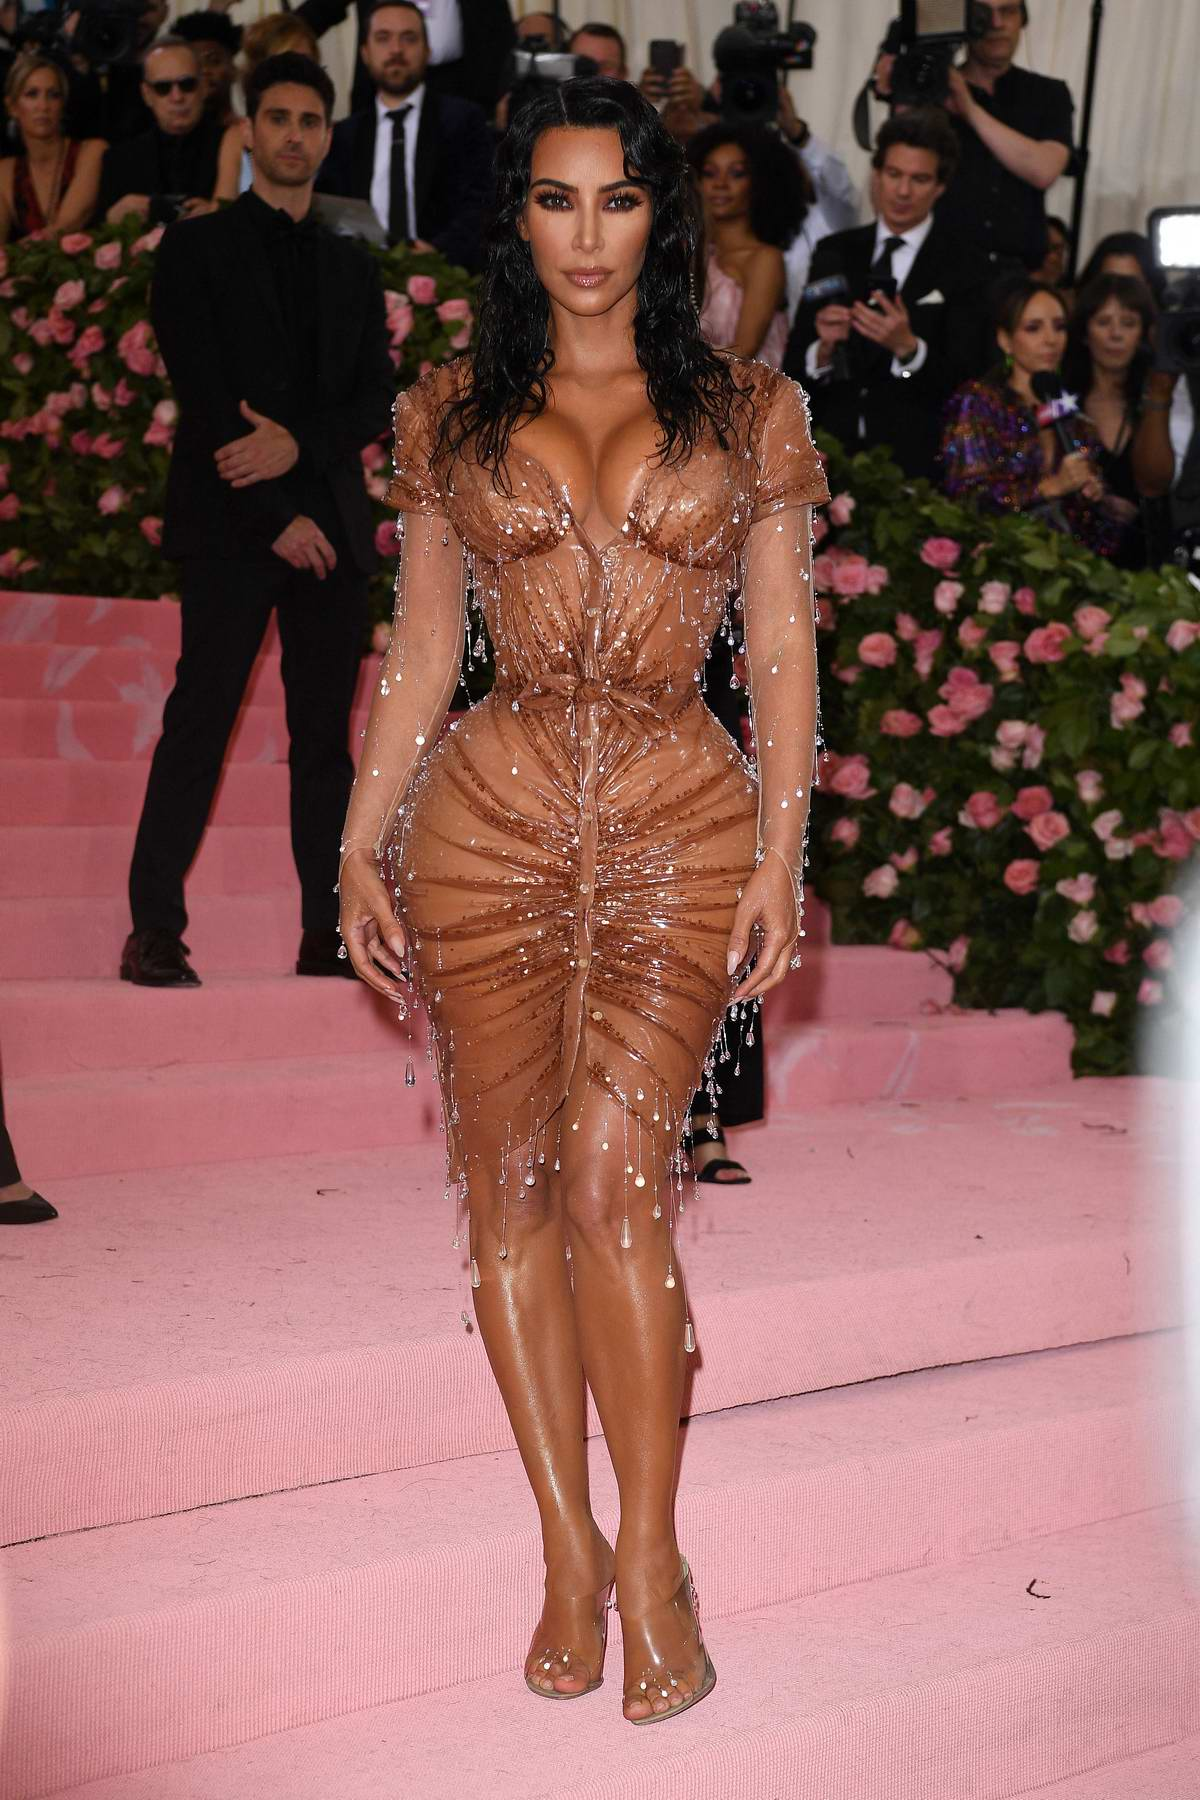 Kim Kardashian attends The 2019 Met Gala Celebrating Camp: Notes on Fashion in New York City